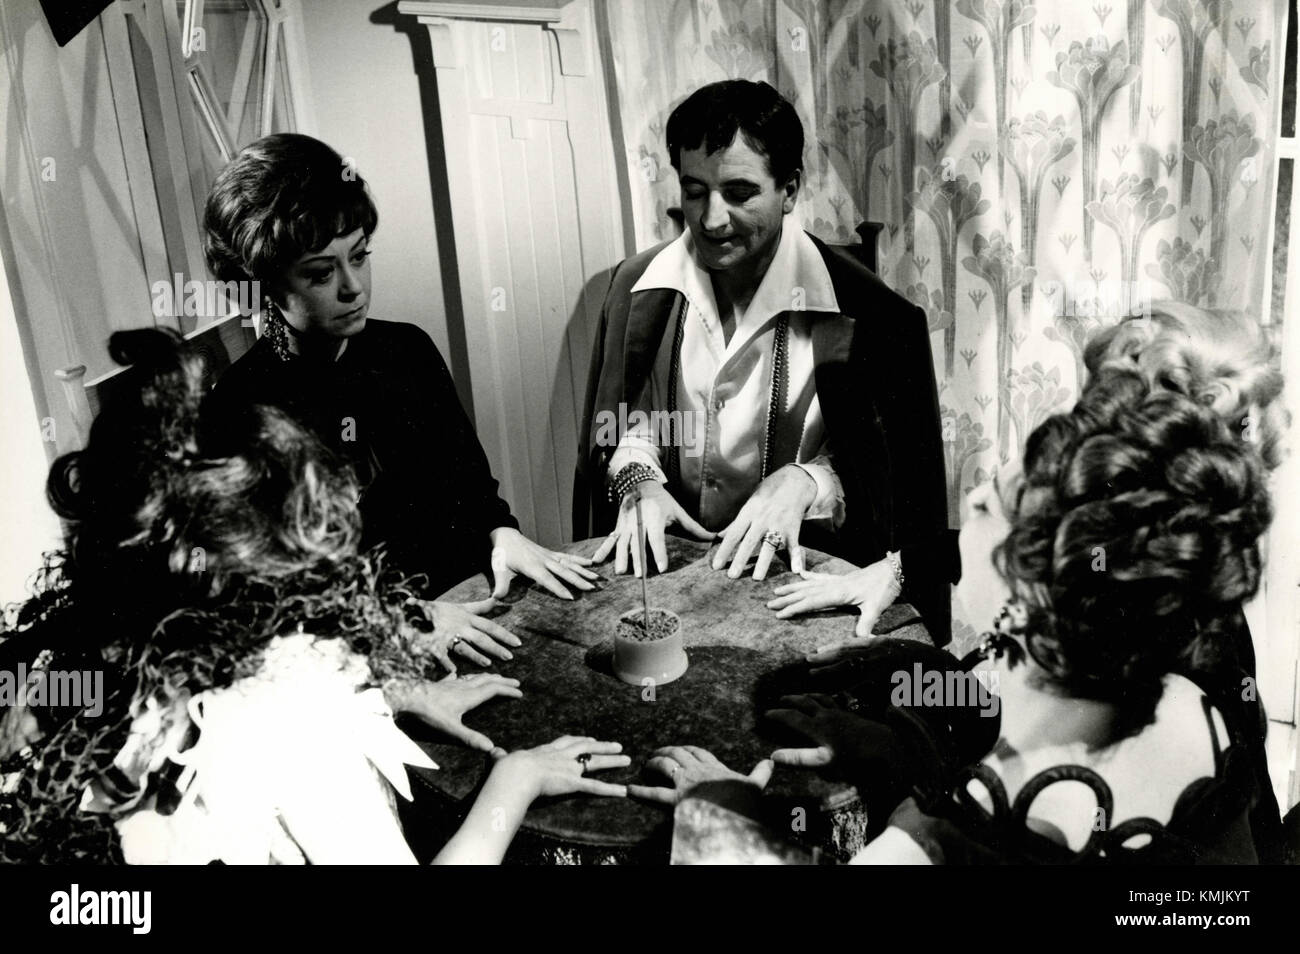 Movie still from the filming of Juliet of the Spirits, Italy 1965 - Stock Image